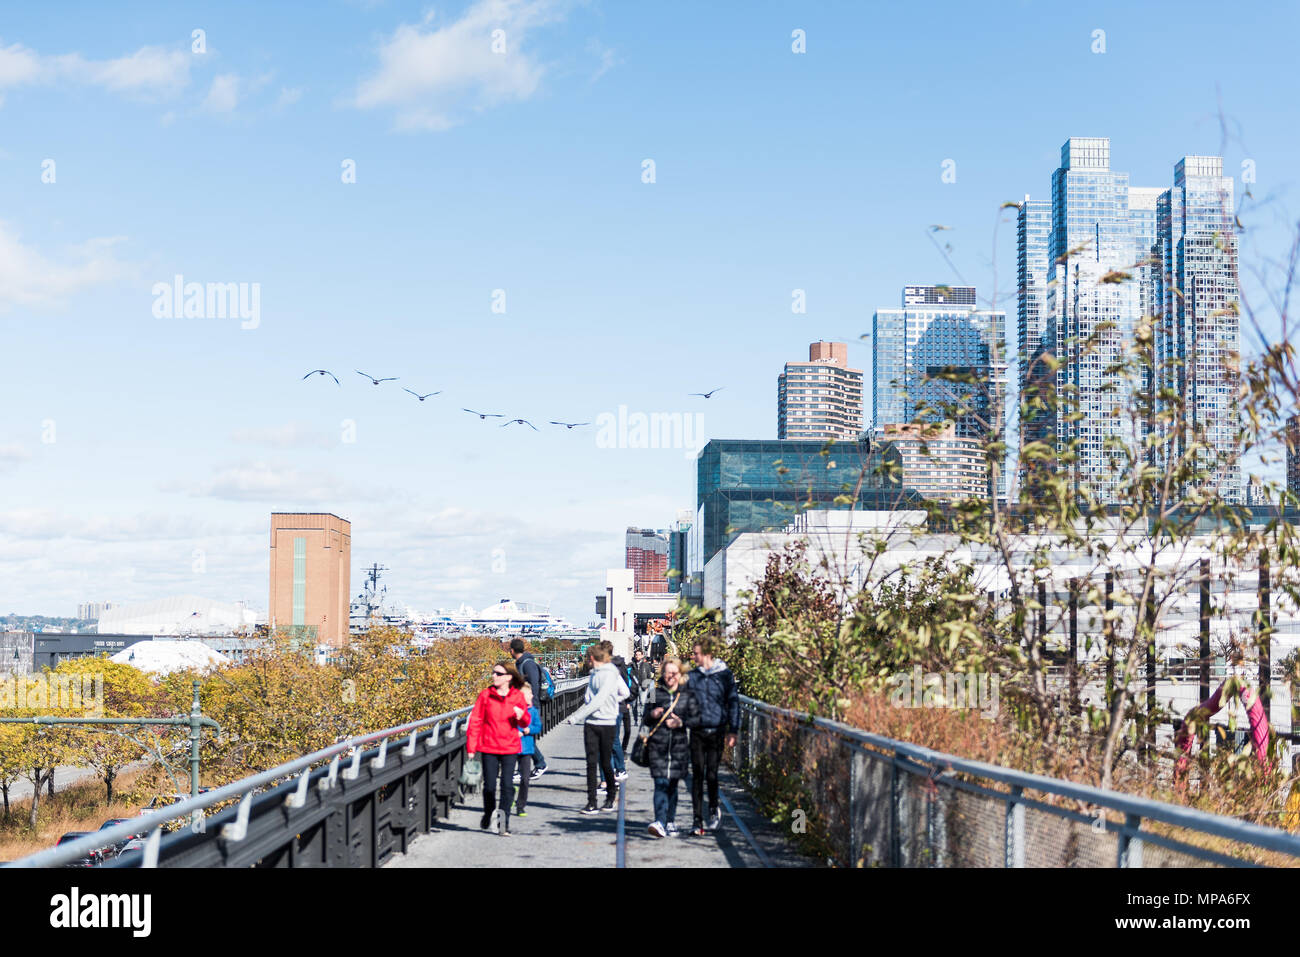 New York City, USA - October 30, 2017: Highline, high line, urban in NYC with people tourists walking in Chelsea West Side by Hudson Yards in autumn f Stock Photo